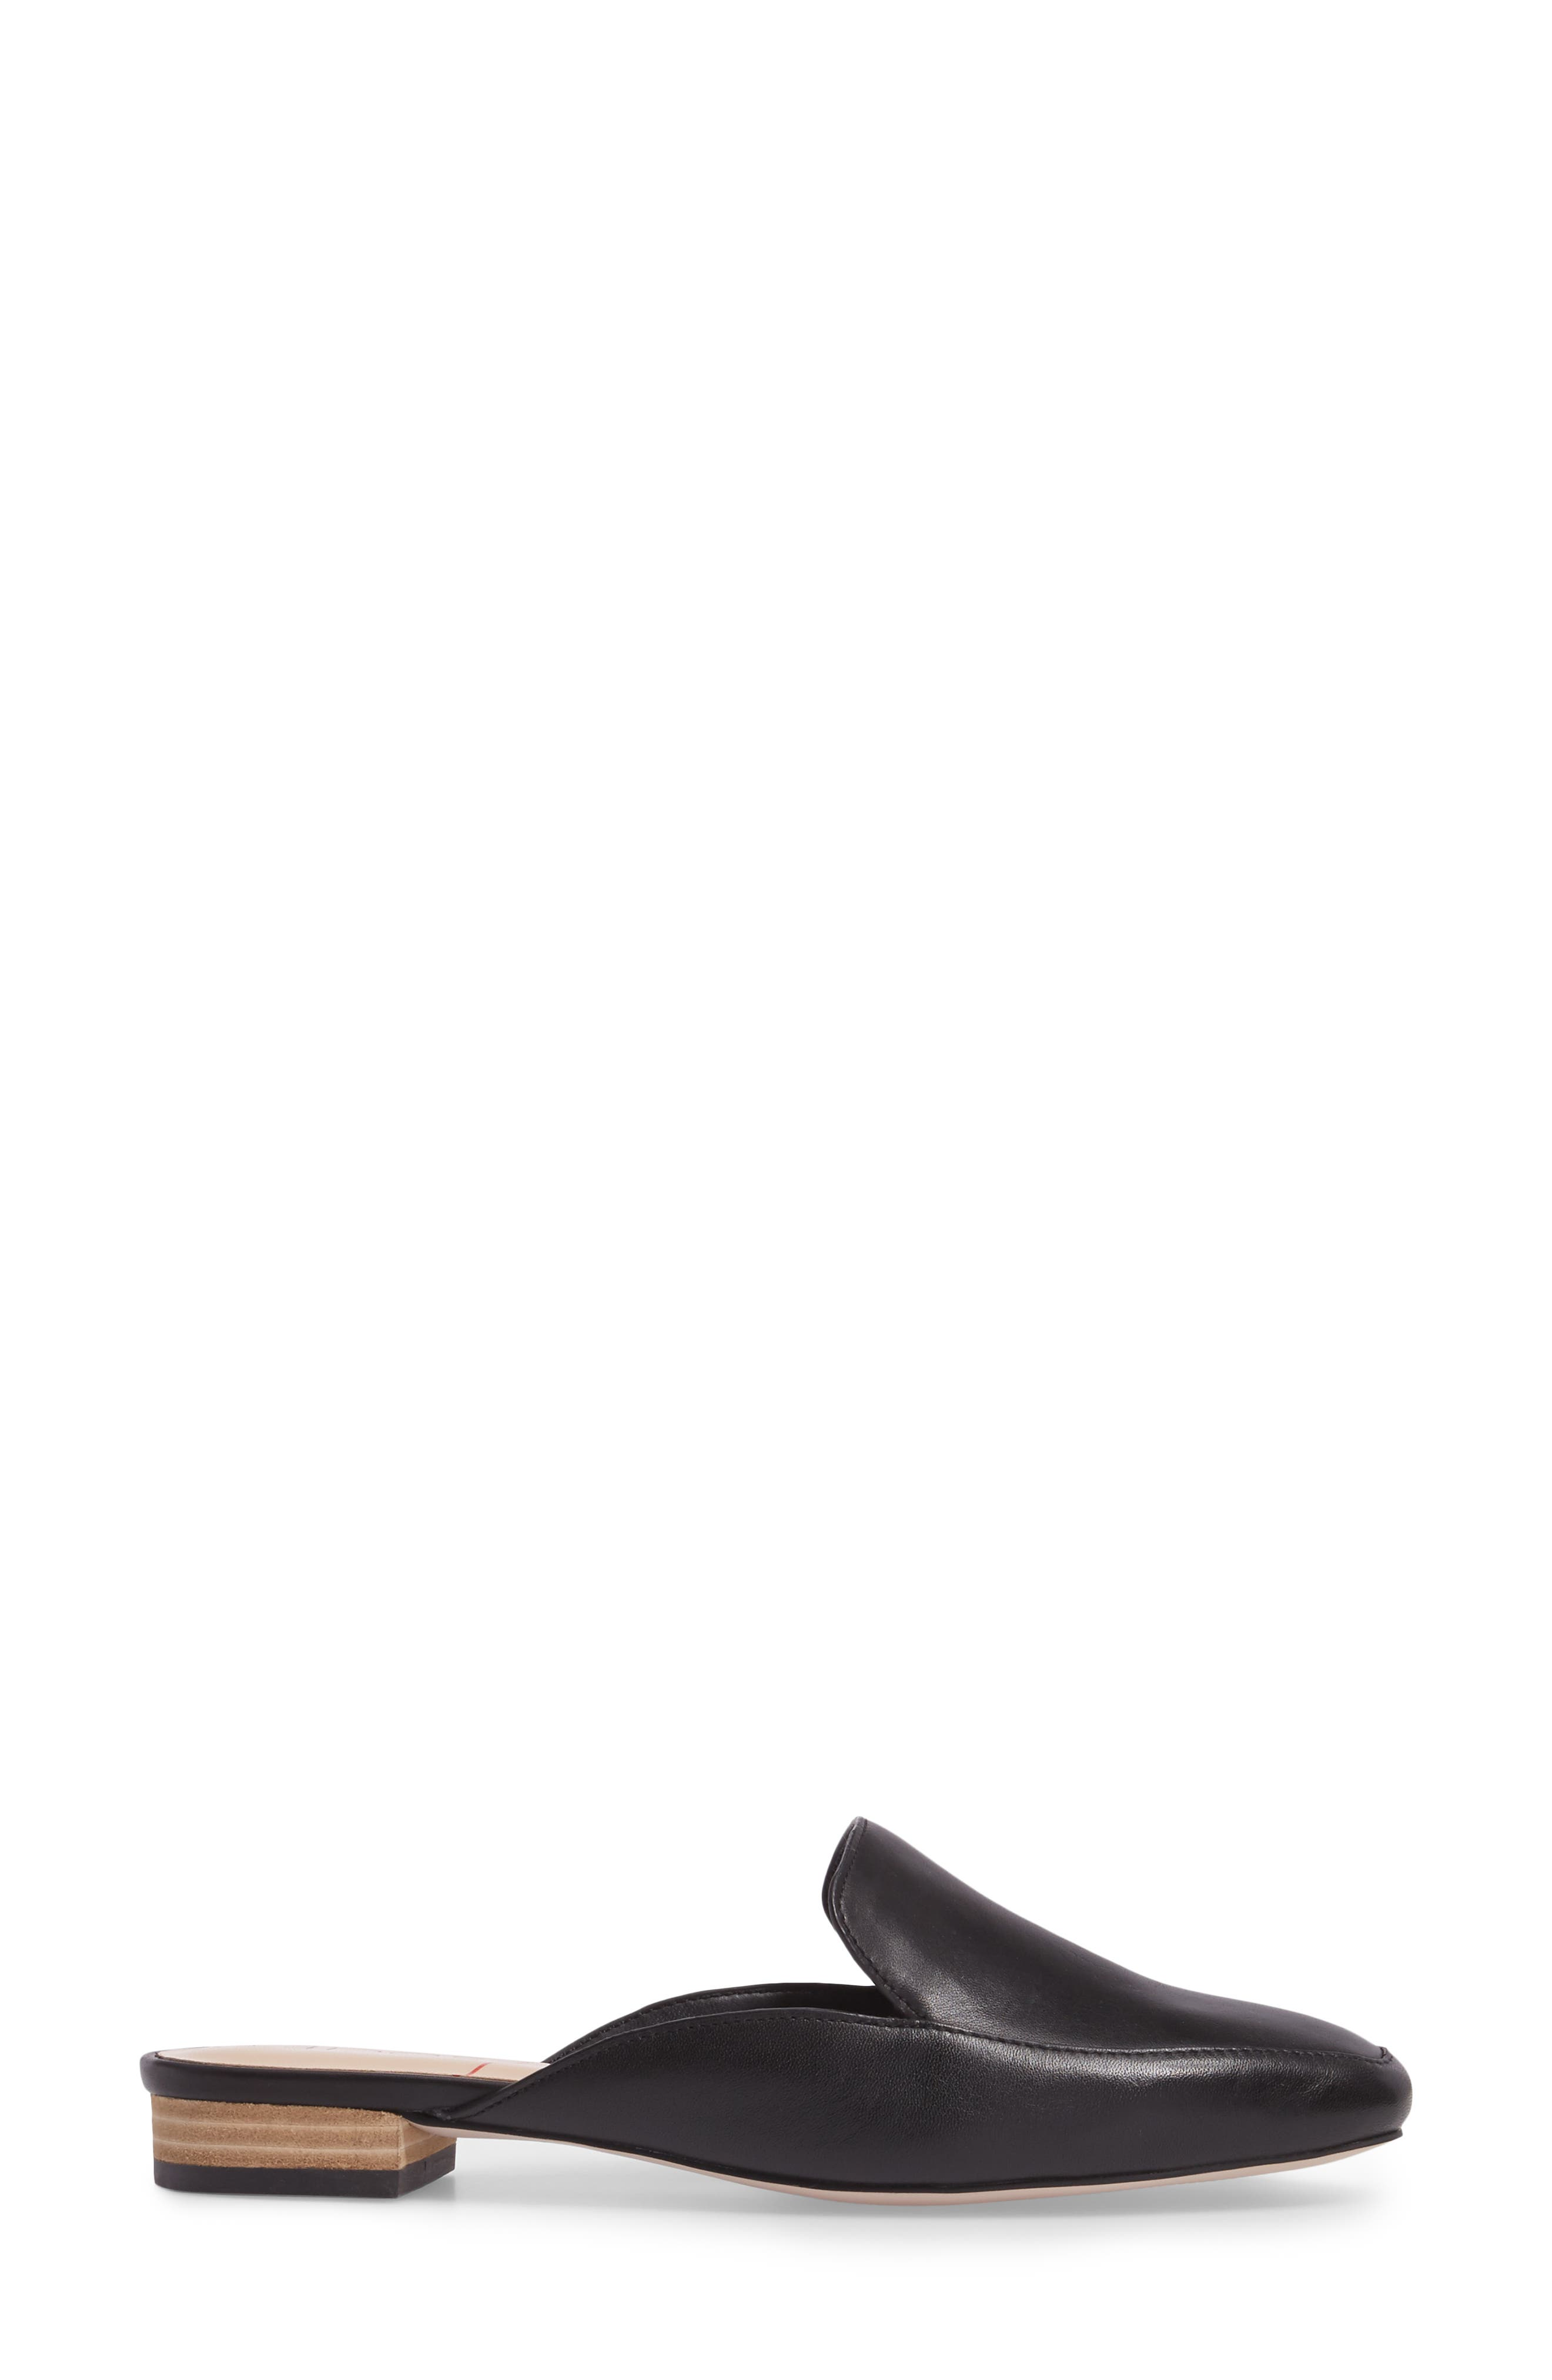 Alternate Image 3  - Sole Society Bedford Loafer Flat (Women)